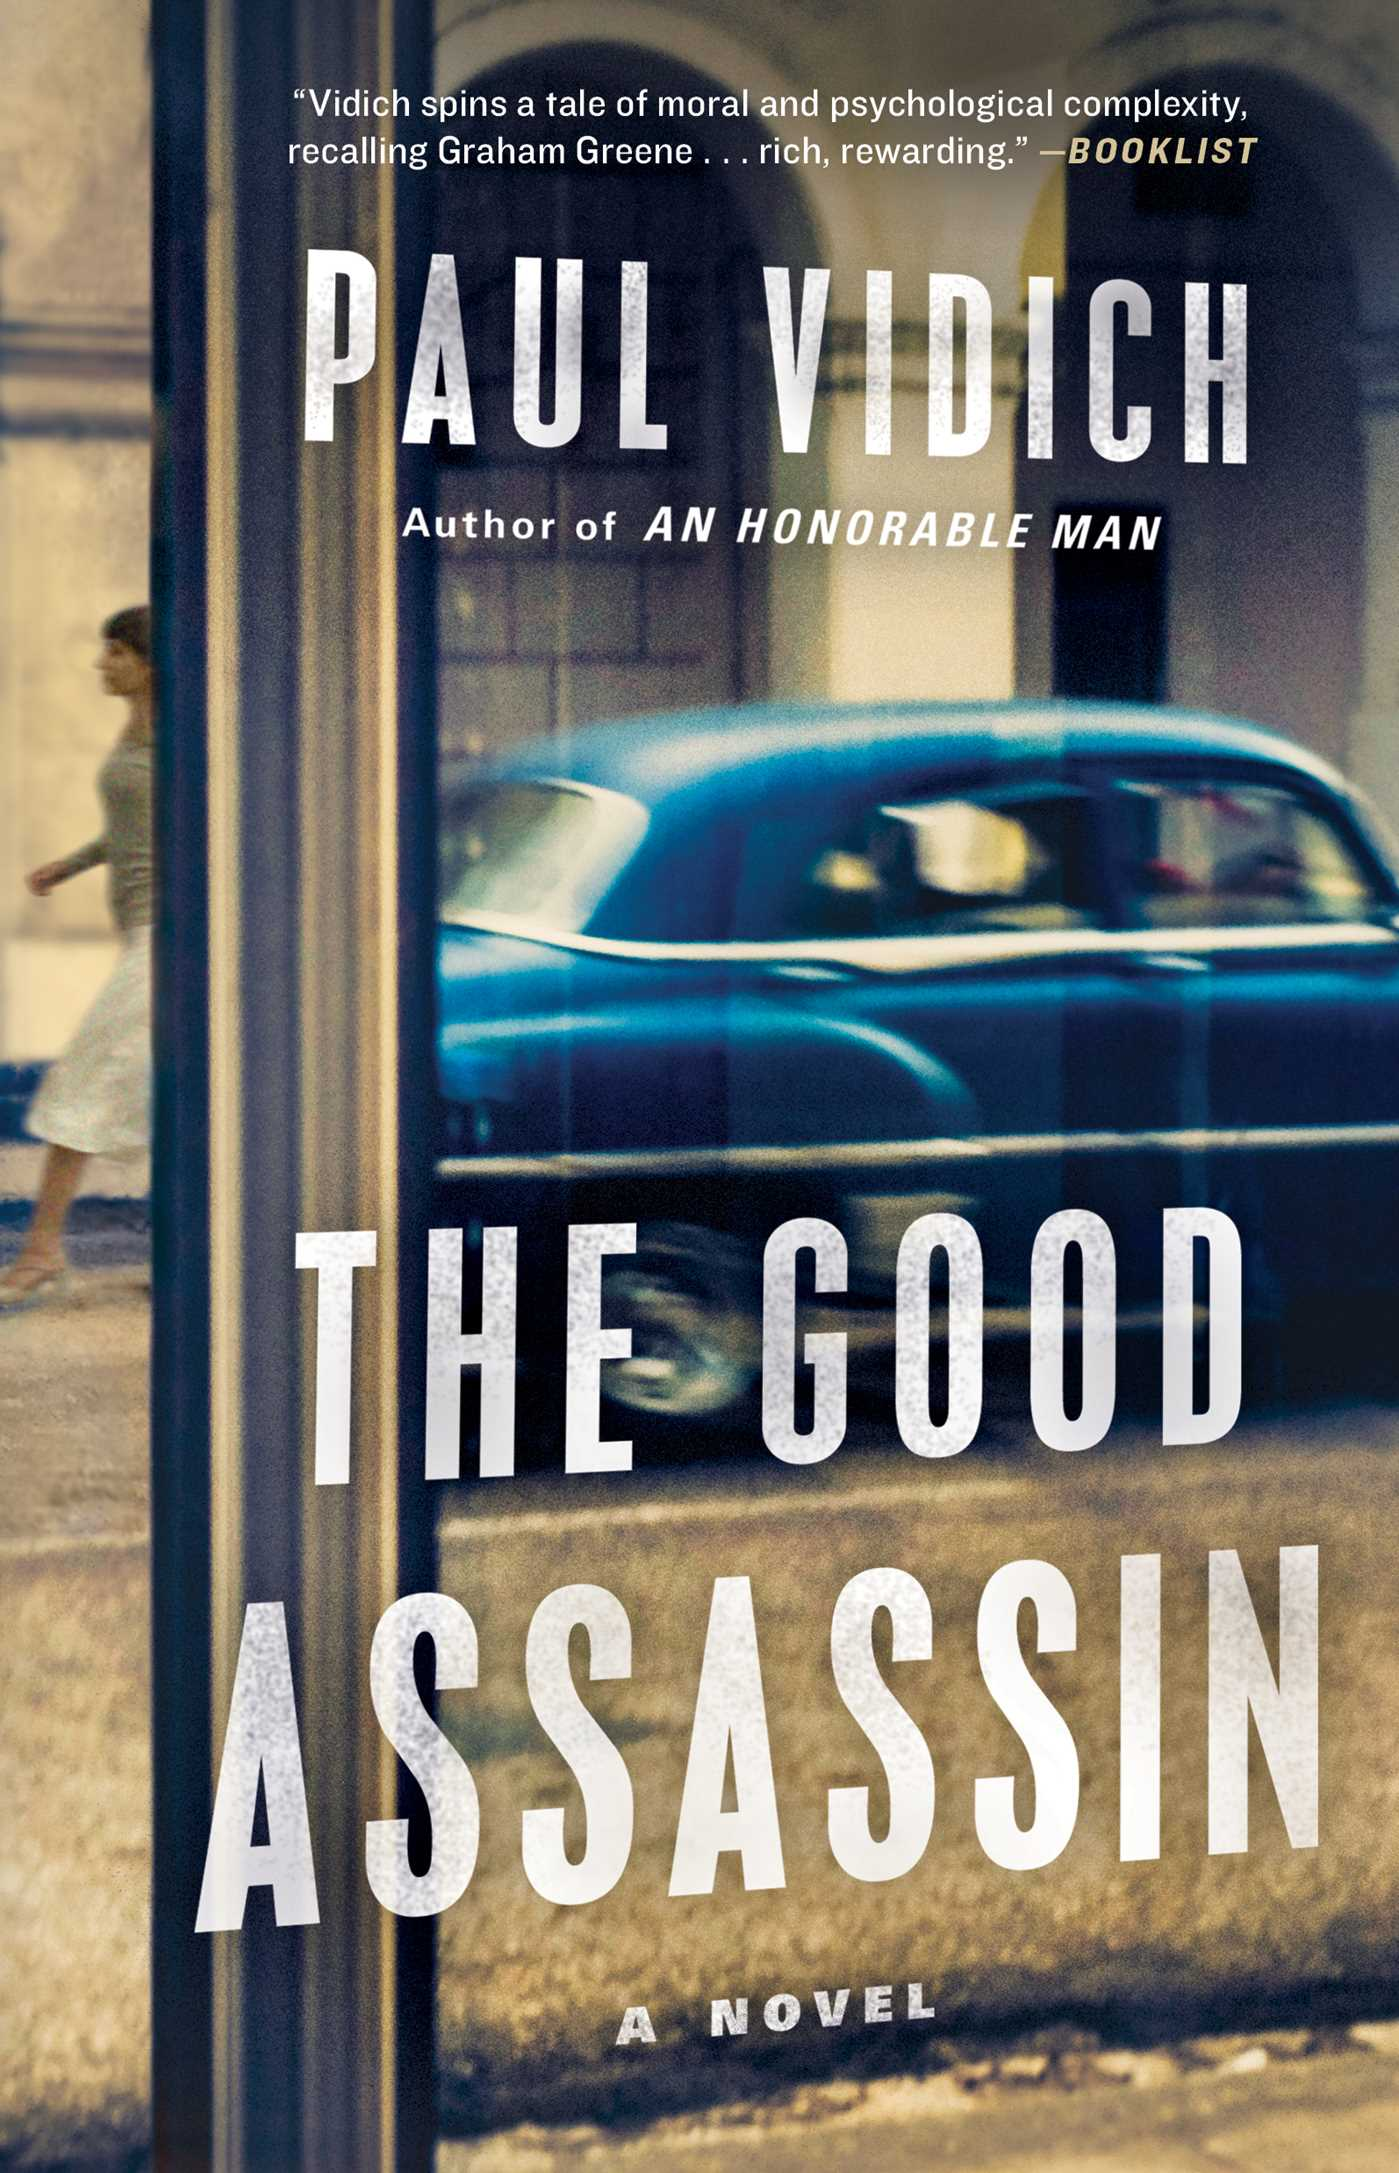 The good assassin 9781501110443 hr